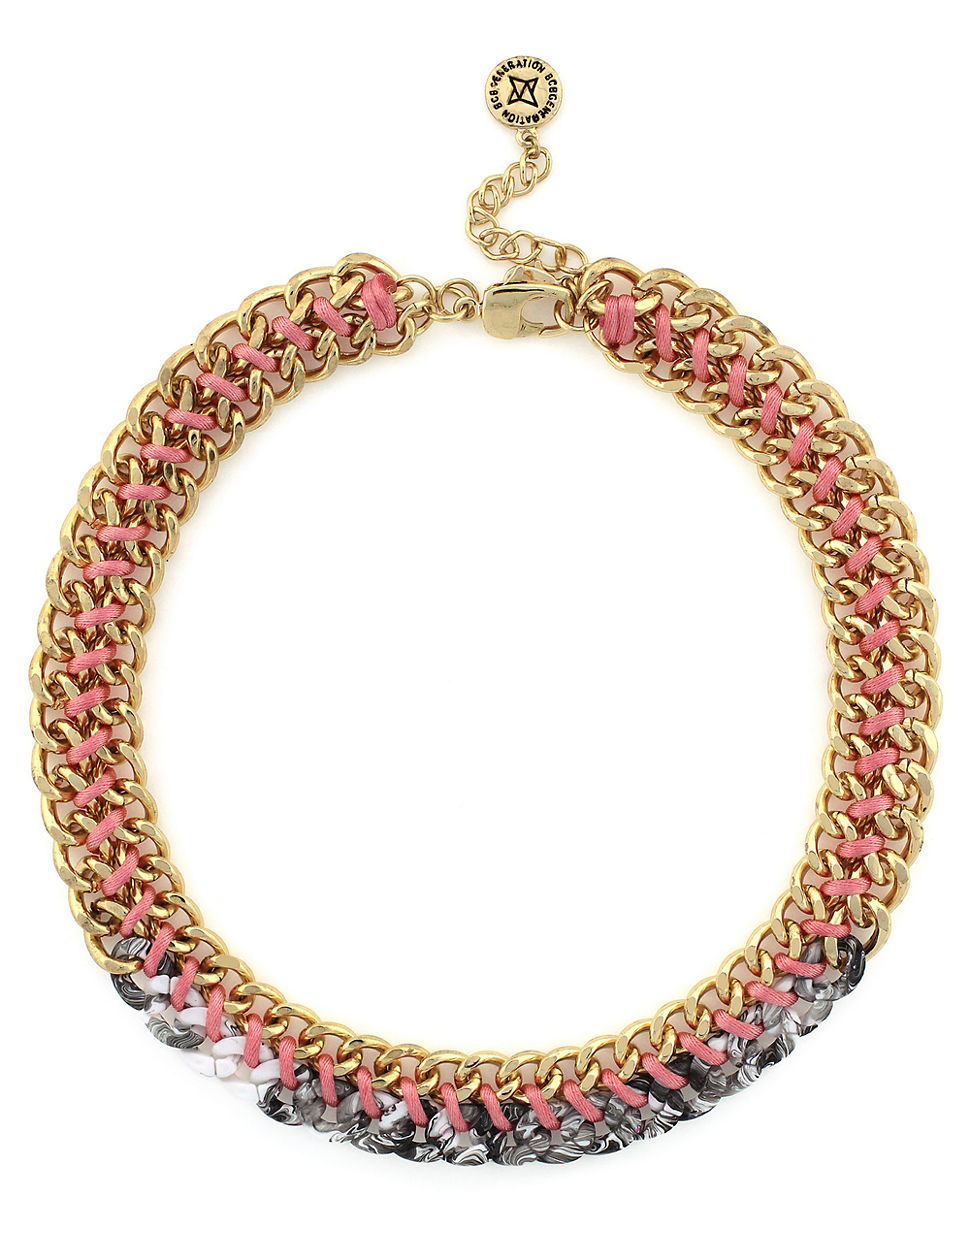 Bcbgeneration Thats Marbelous Woven Necklace In Gold